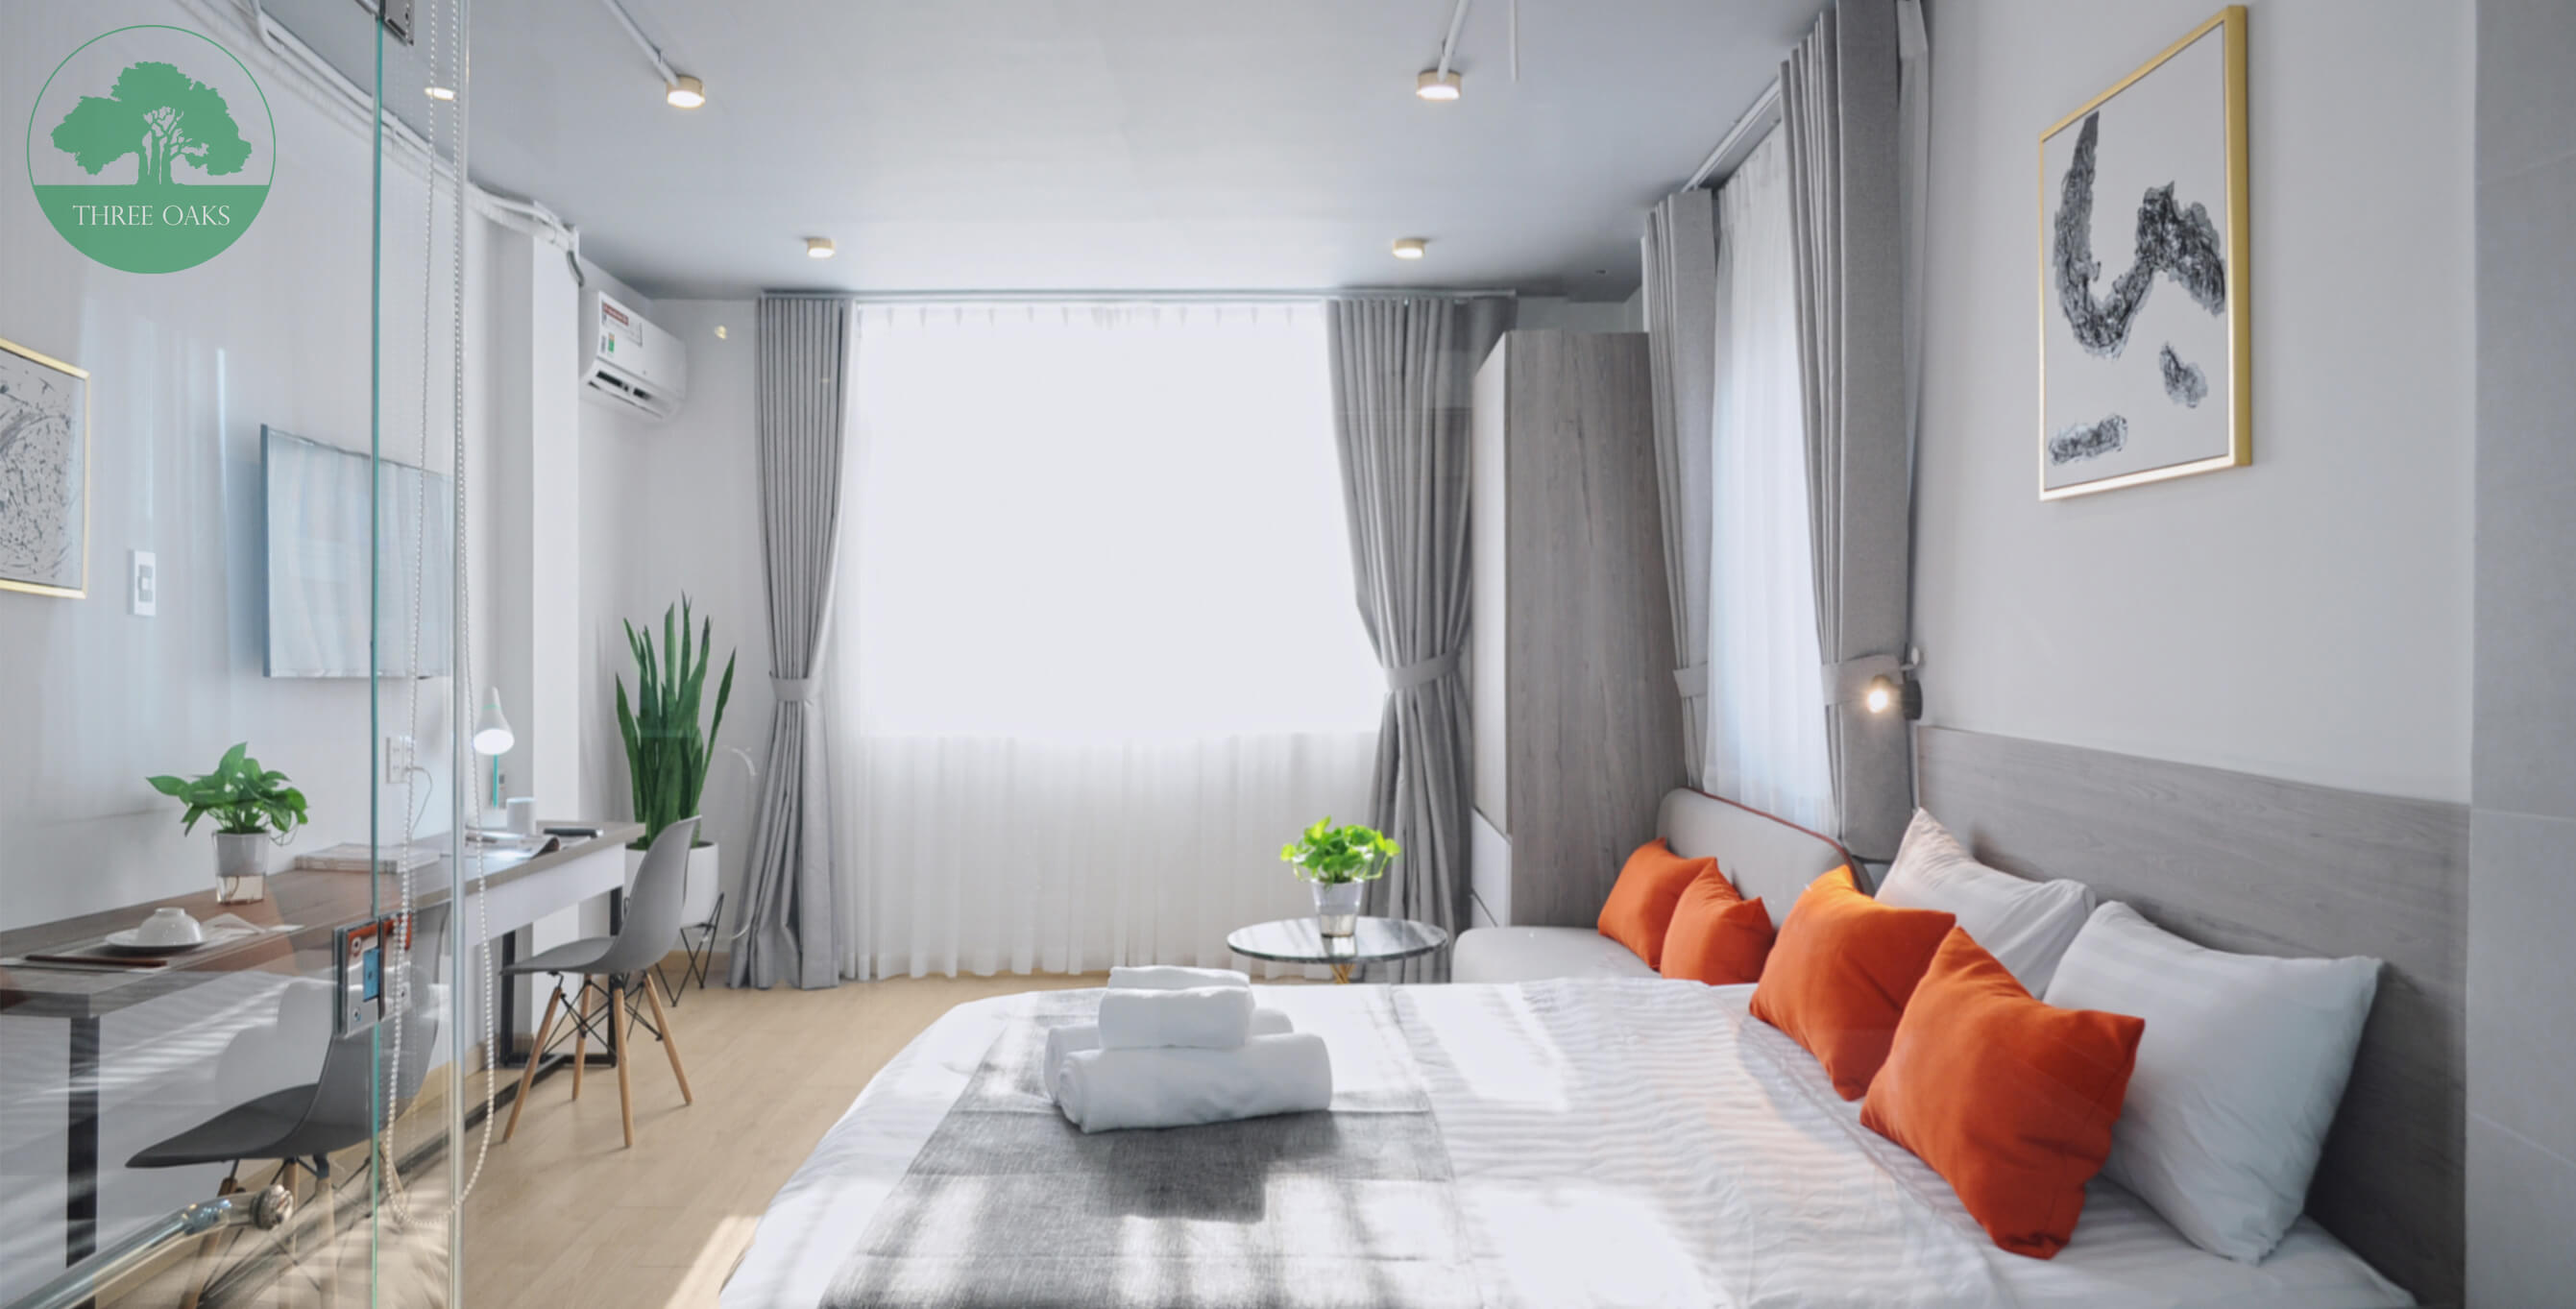 new-studio-for-rent-in-district-4-ho-chi-minh-city-15